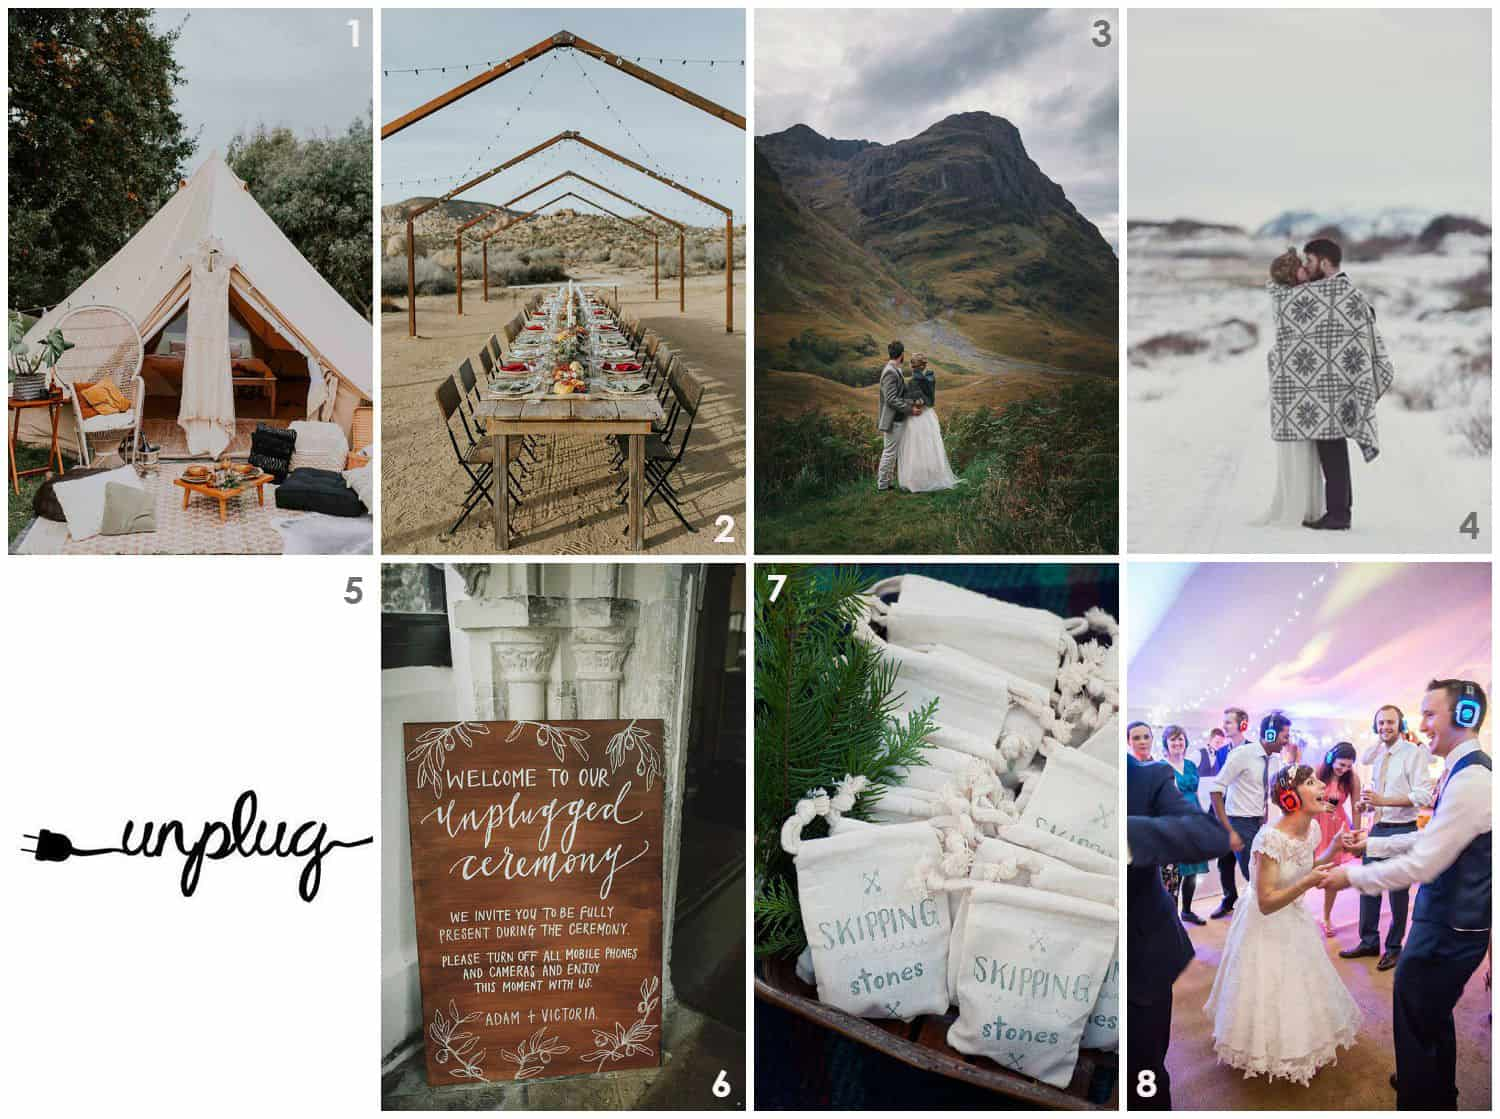 2019 wedding trends - Unplugged & Off Grid, elopement, silent disco, social media ban, no phones, no cameras, unplugged.